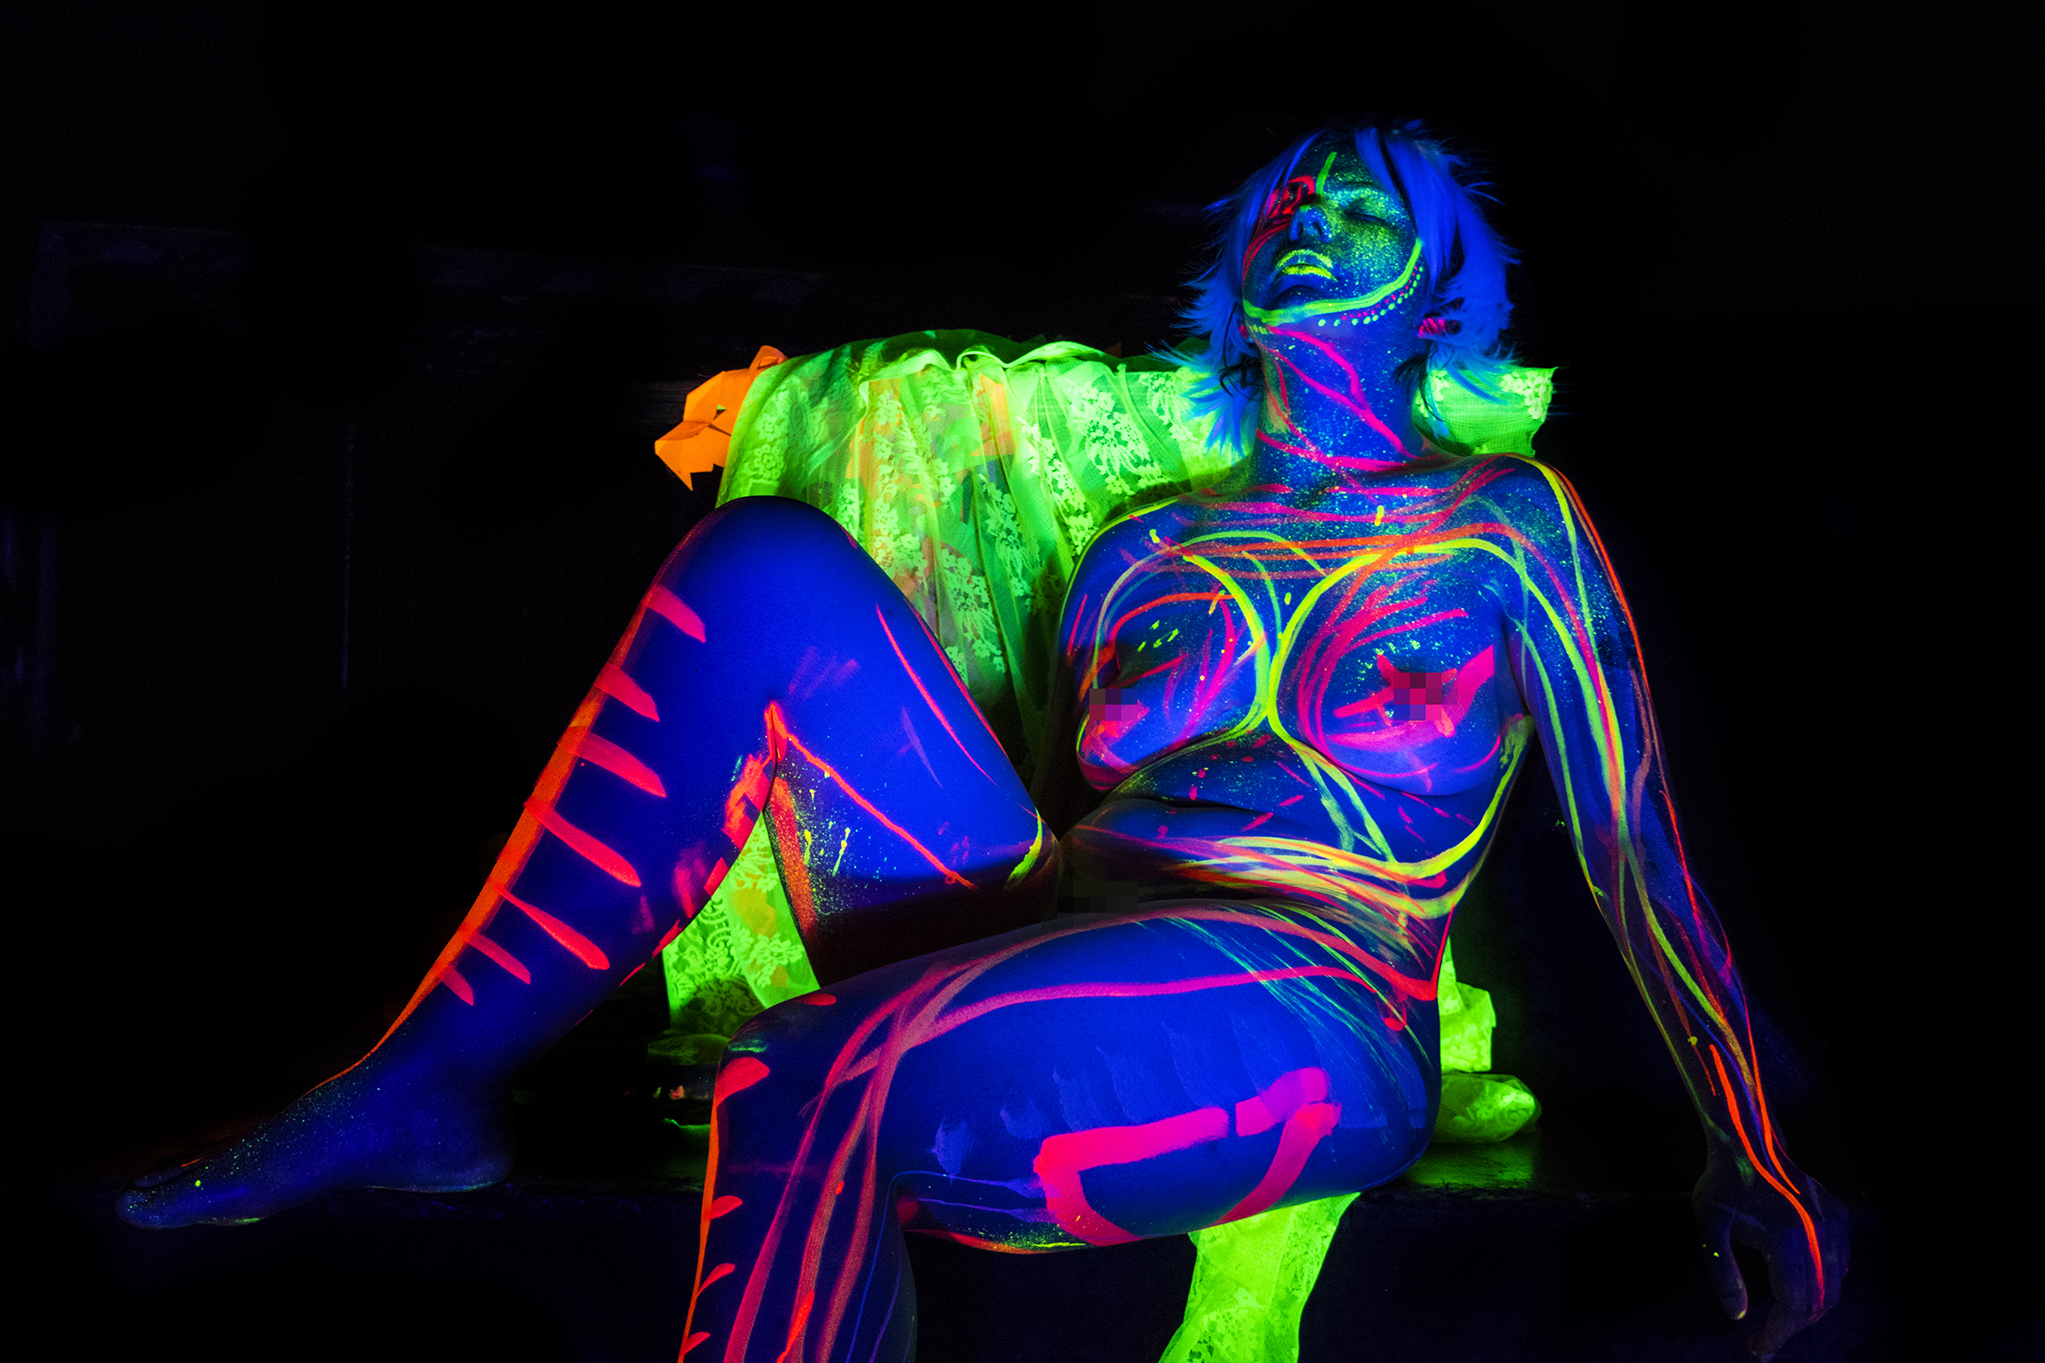 Jess modelling for Neon Naked.